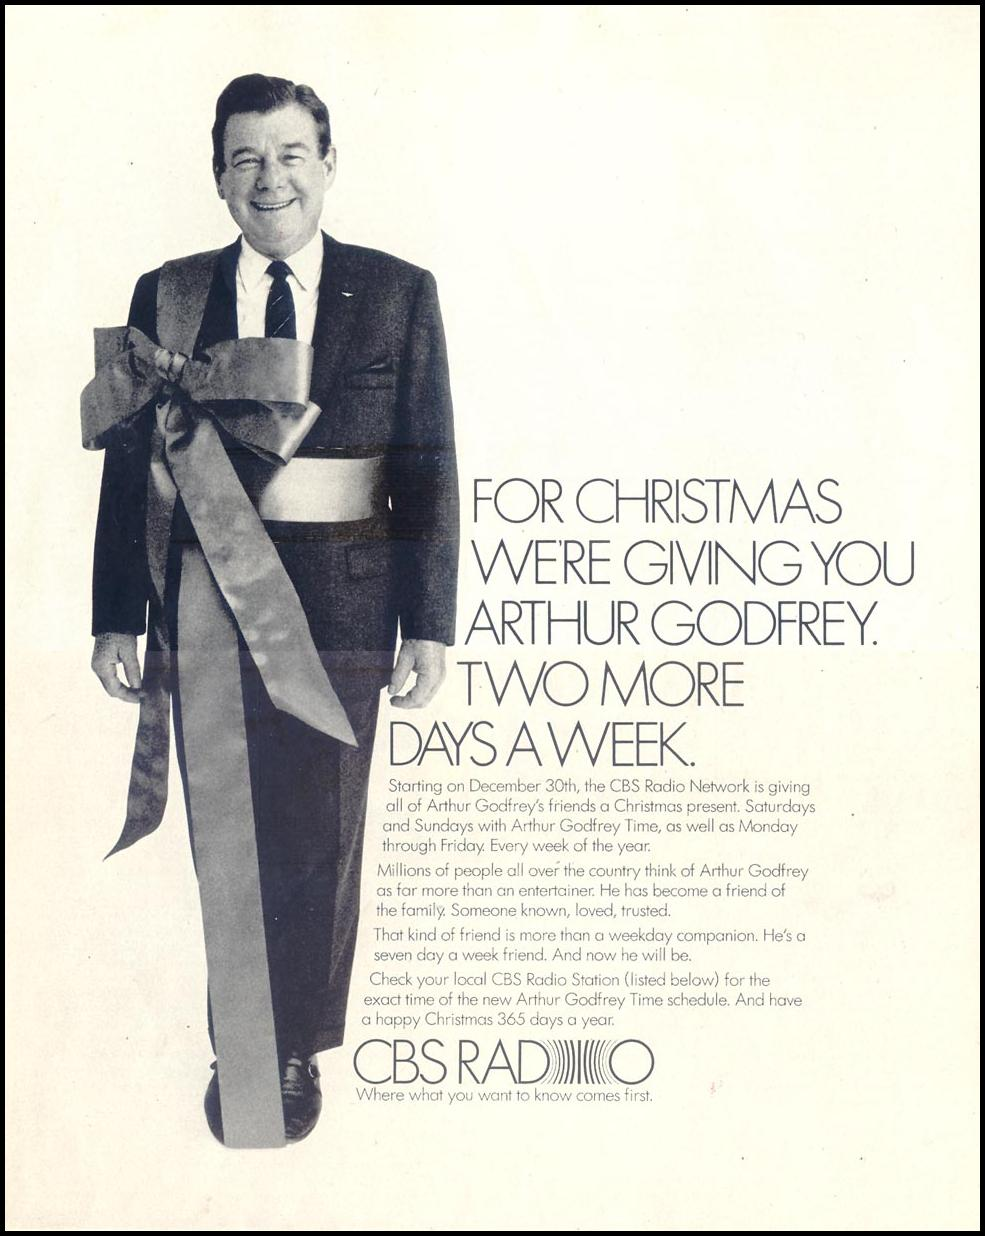 CBS RADIO SATURDAY EVENING POST 12/28/1968 p. 71